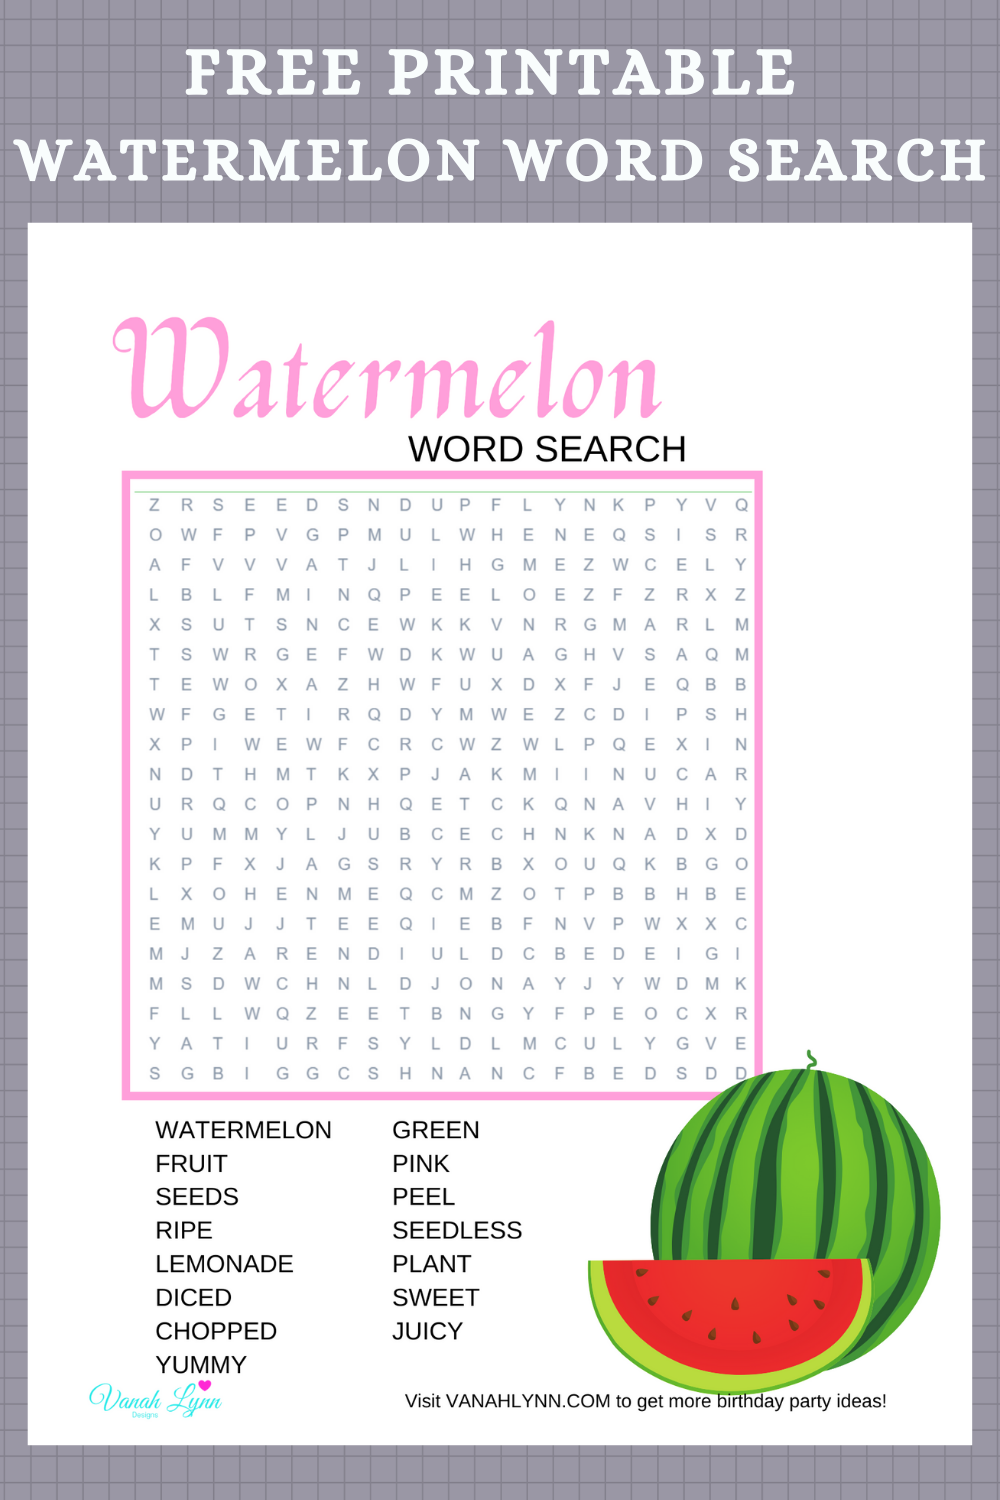 free printable watermelon word find for little girl's birthday party